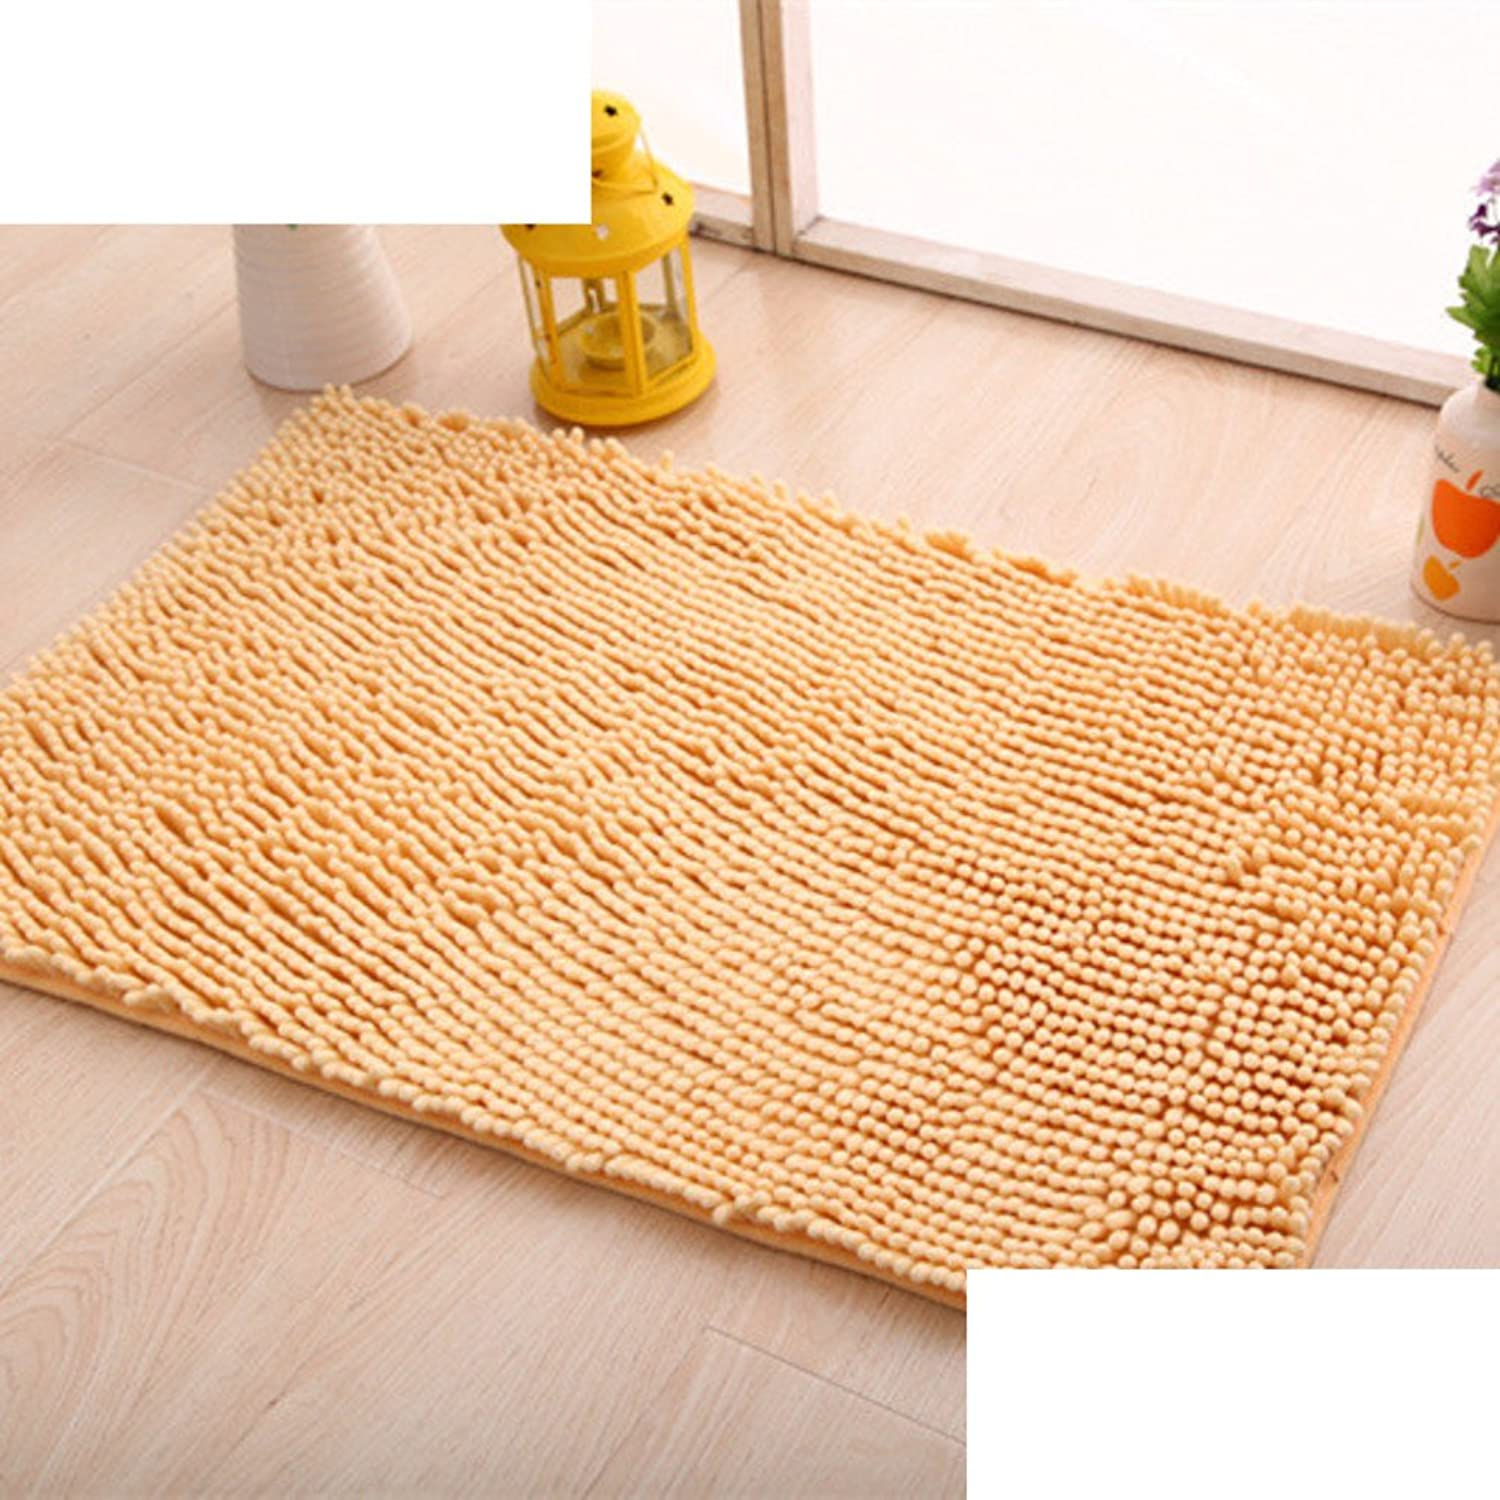 Chenille mat bathroom Bathroom Water-absorption anti-slip door mat floor mats for bedroom -F 50x160cm(20x63inch)